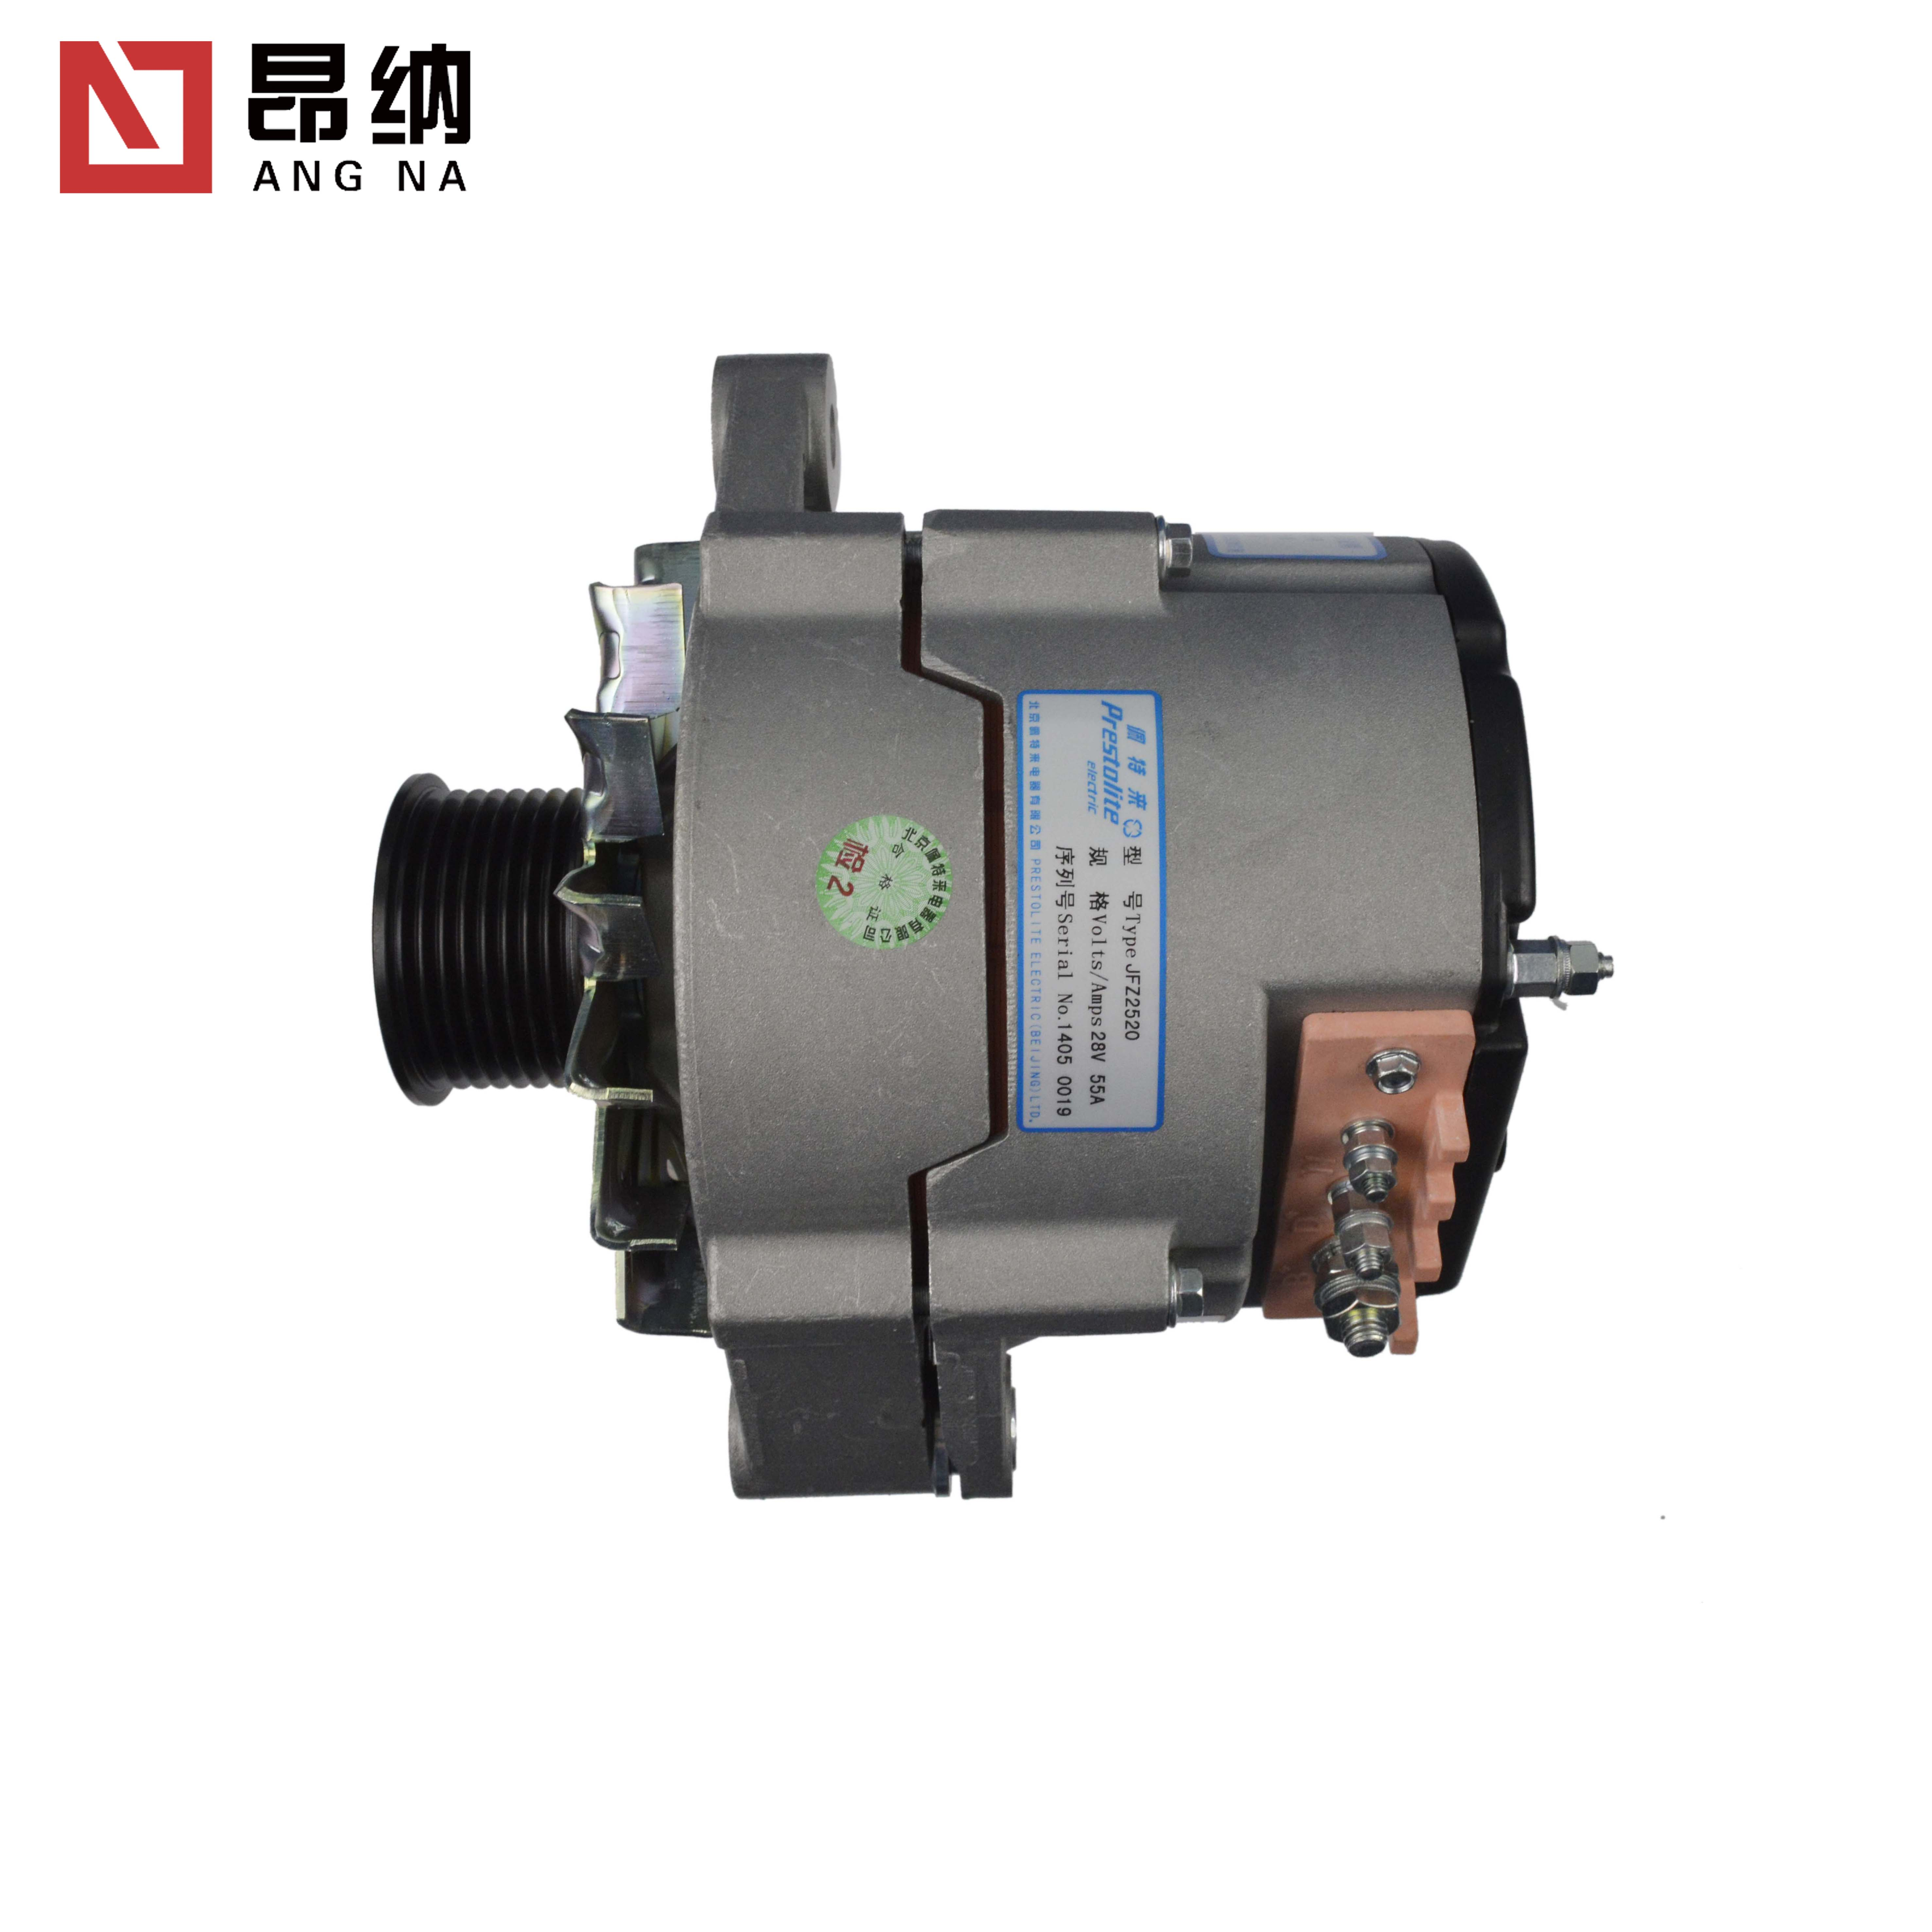 Alternator motor <strong>D11</strong>-102-11+B for SDEC <strong>POWER</strong> D6114 series/AUMAN with good price